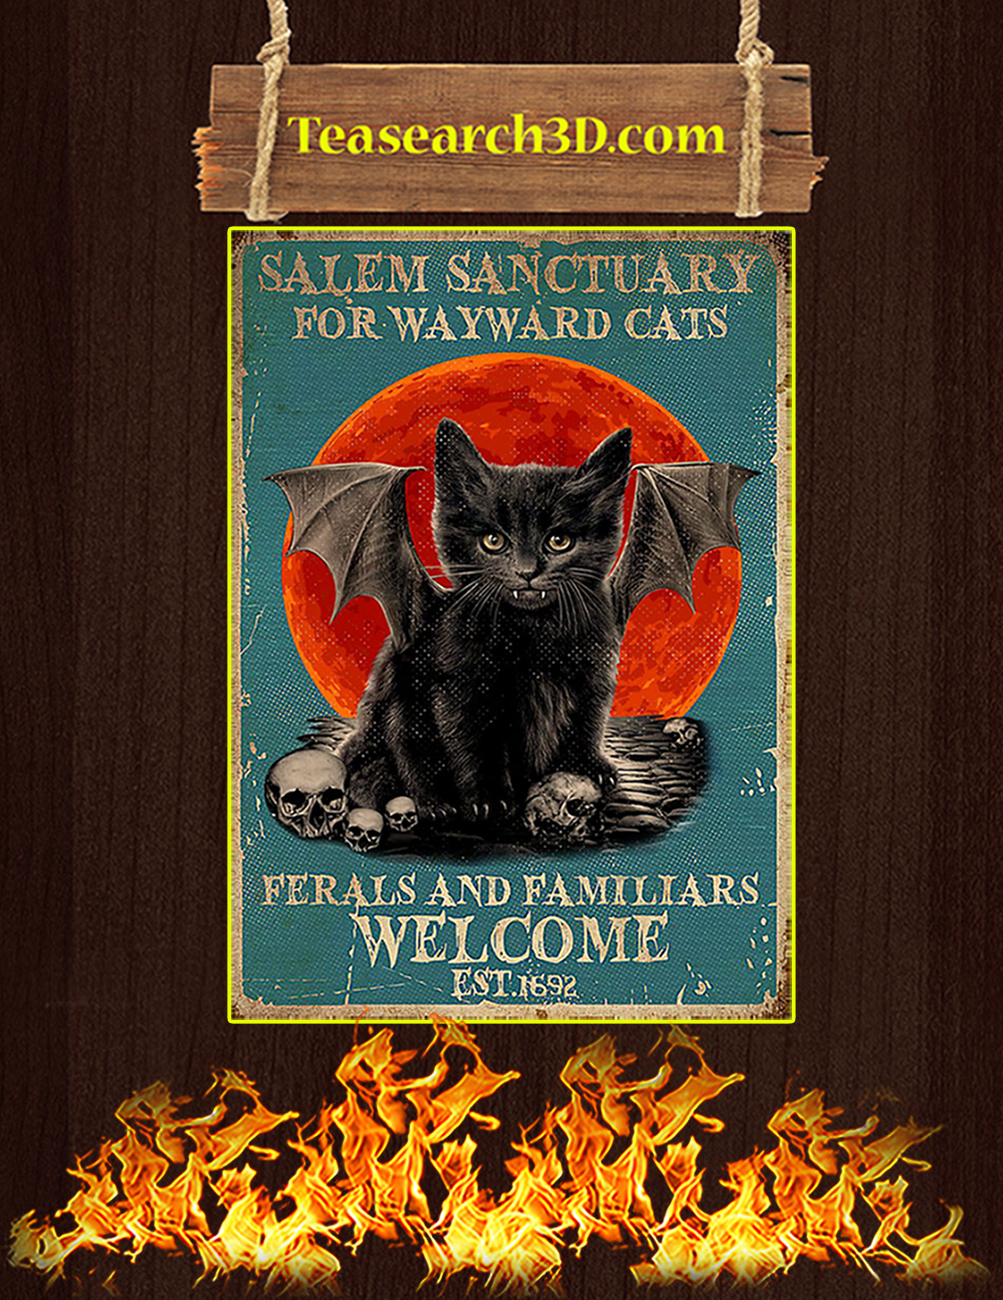 Salem sanctuary for wayward cats ferals and familiars welcome est 1962 poster